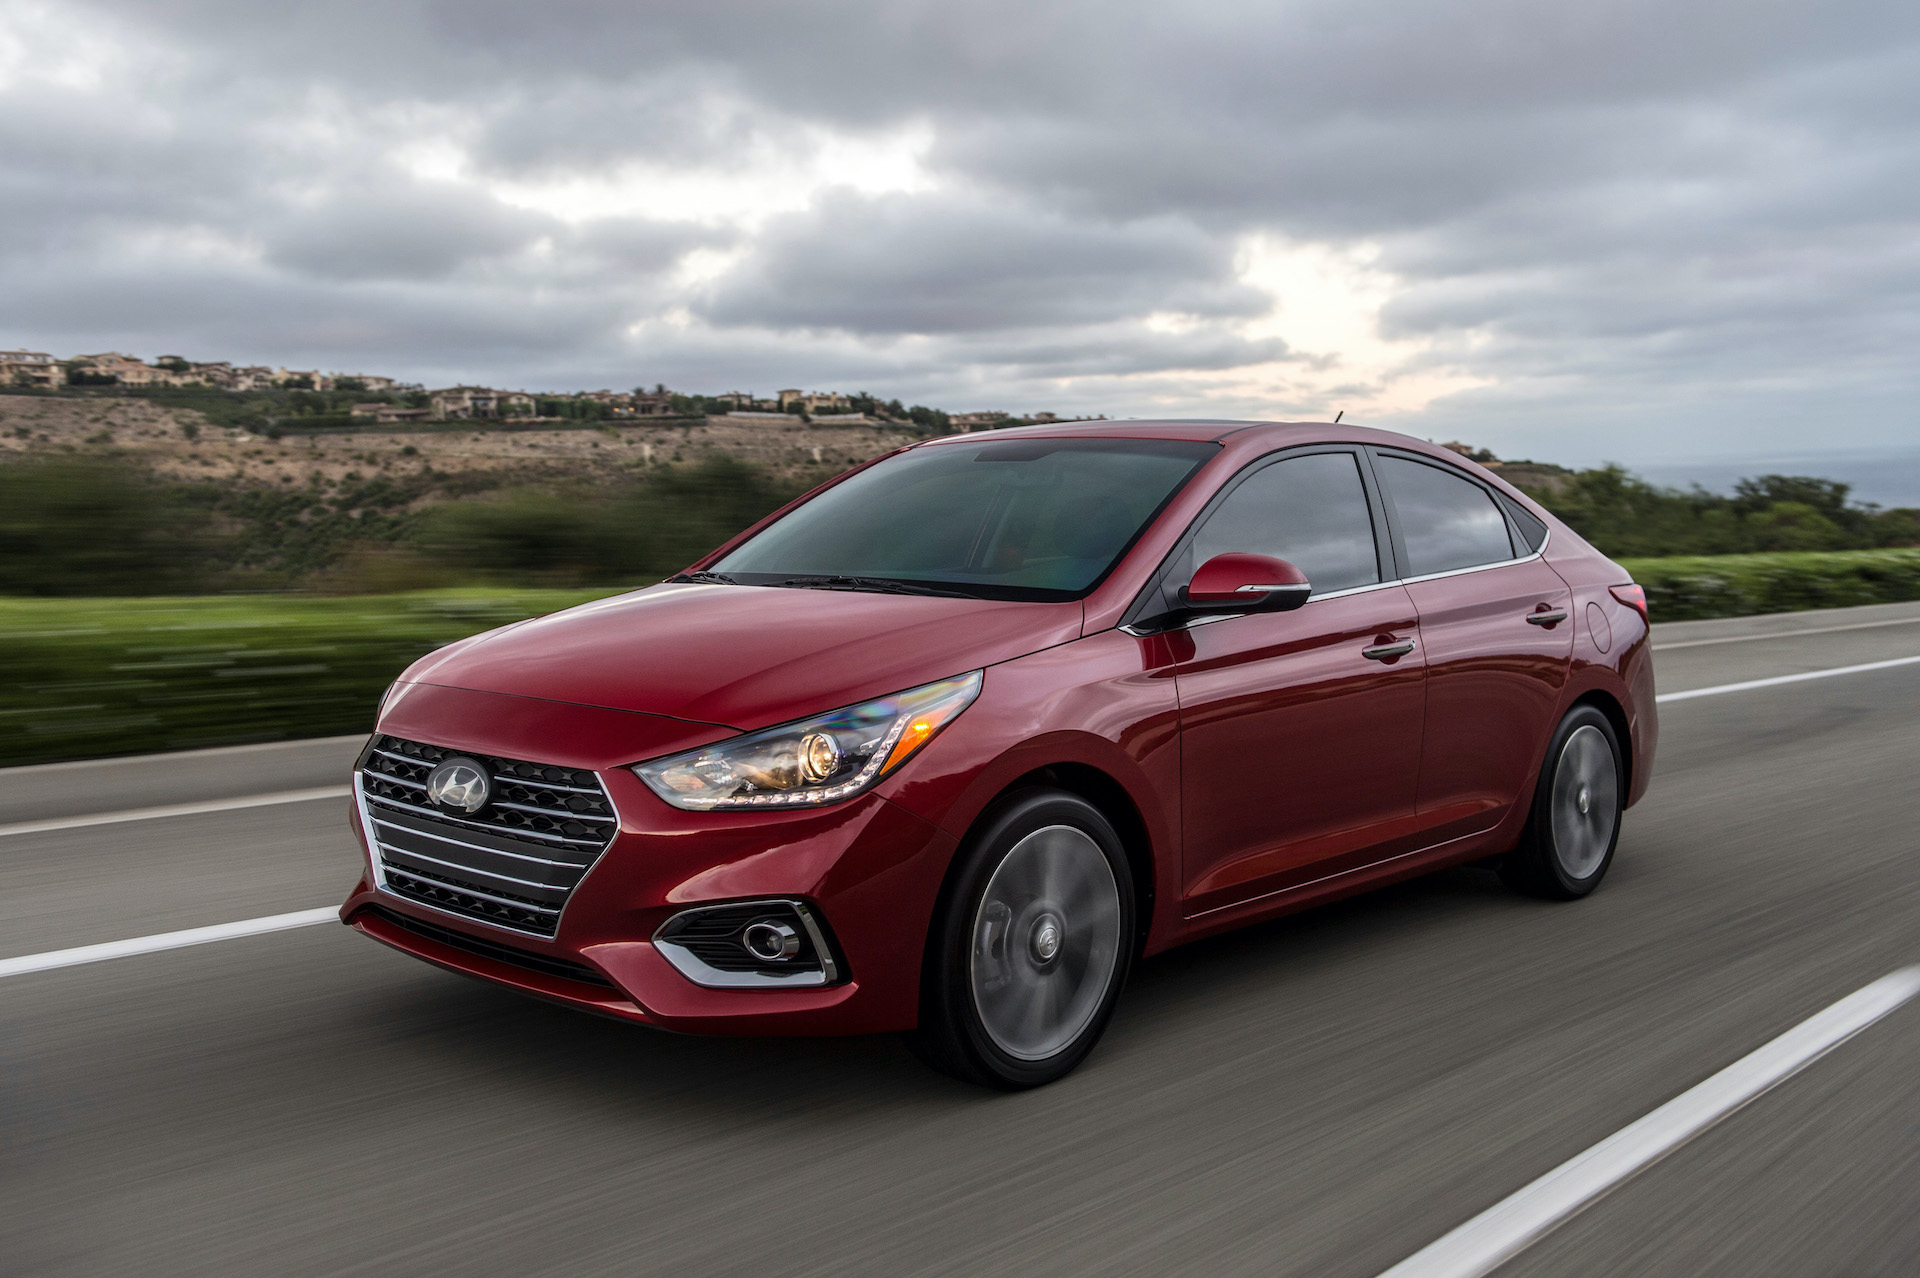 new and used hyundai accent prices photos reviews specs the car connection new and used hyundai accent prices